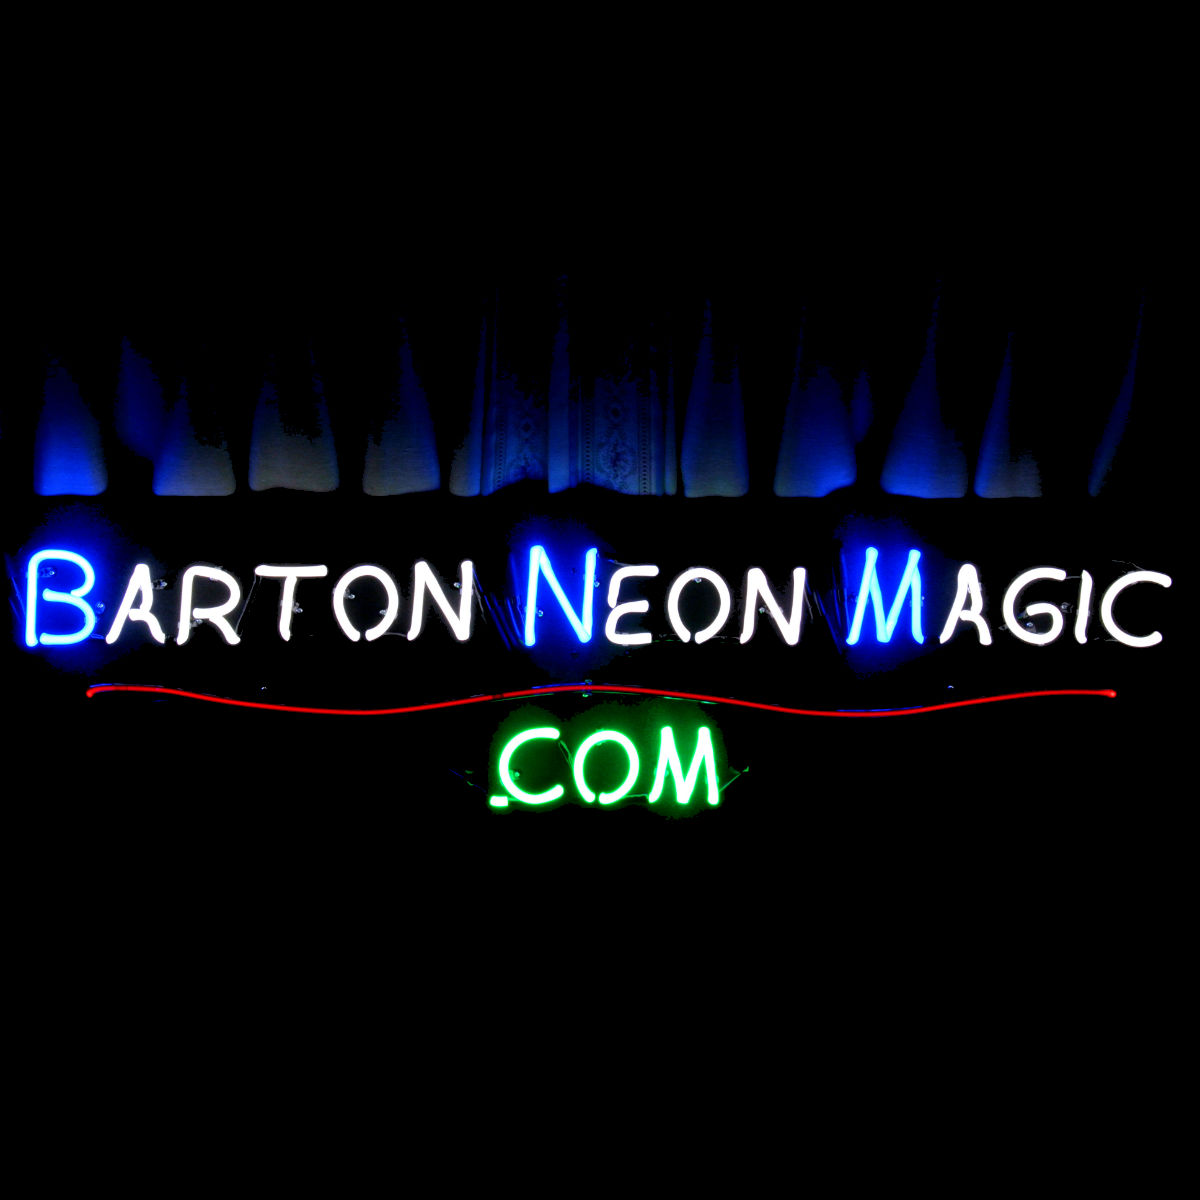 Custom Automotive Neon Signs by John Barton - BartonNeonMagic.com